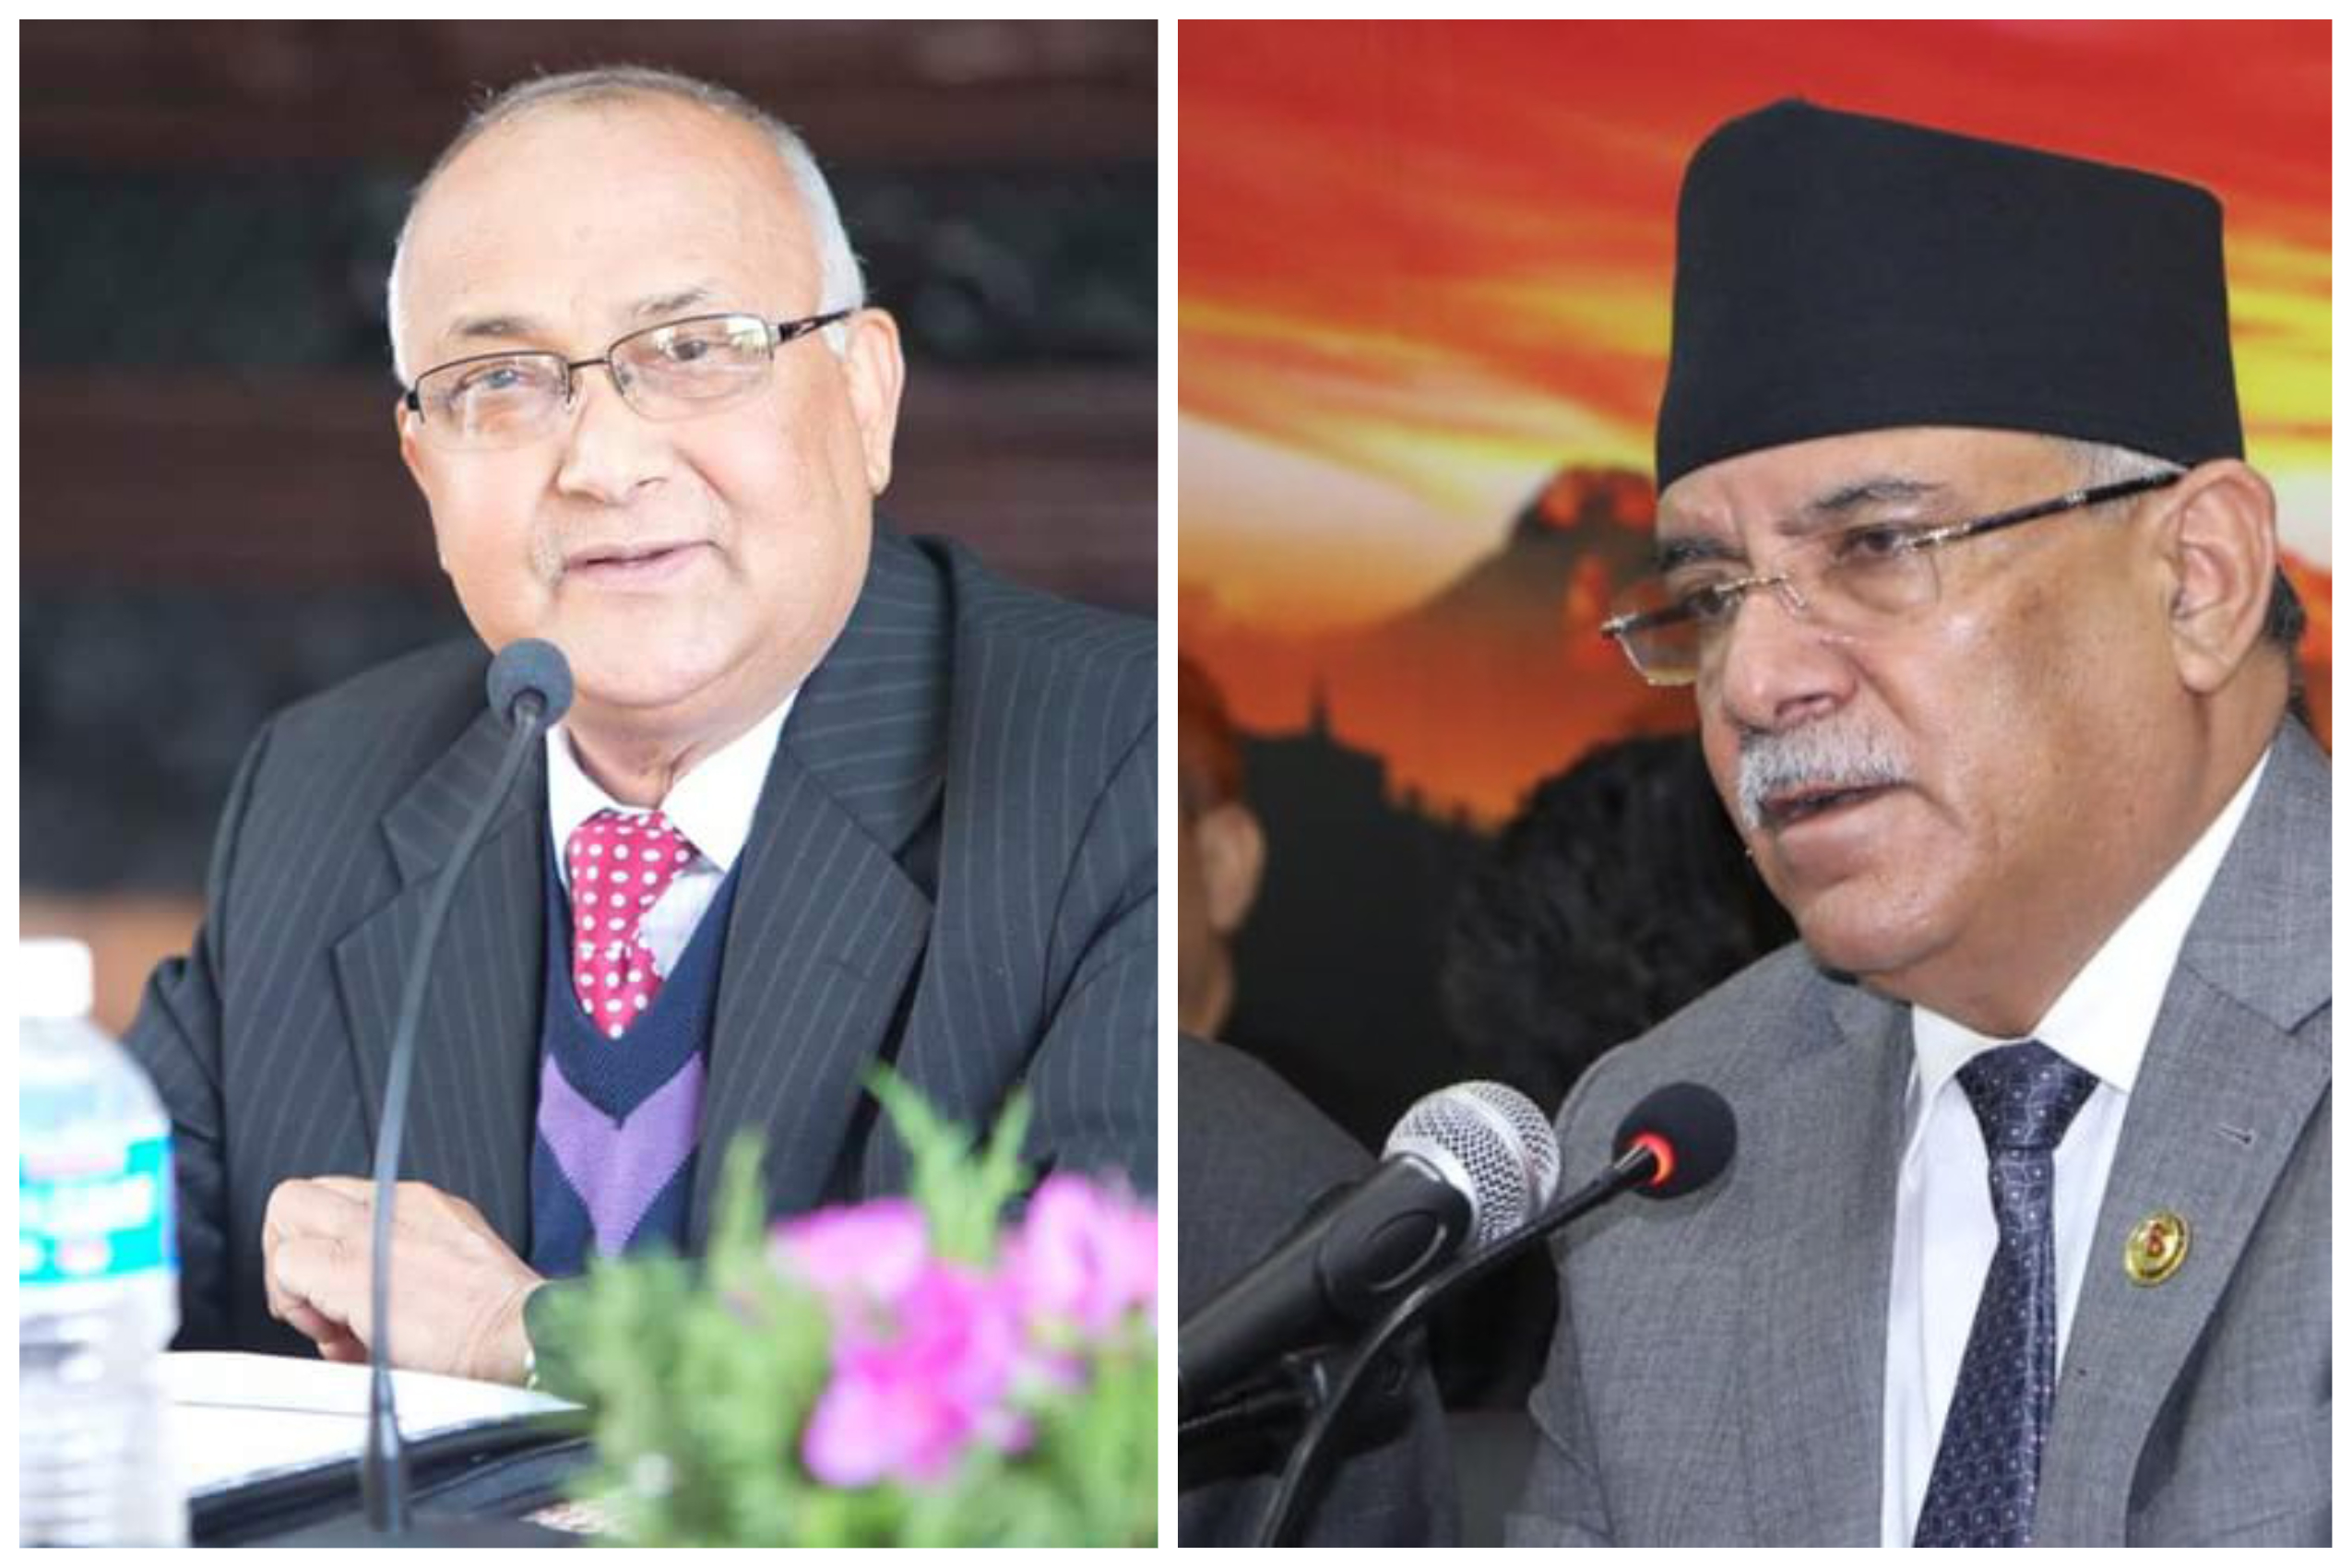 kp woli and prachanda